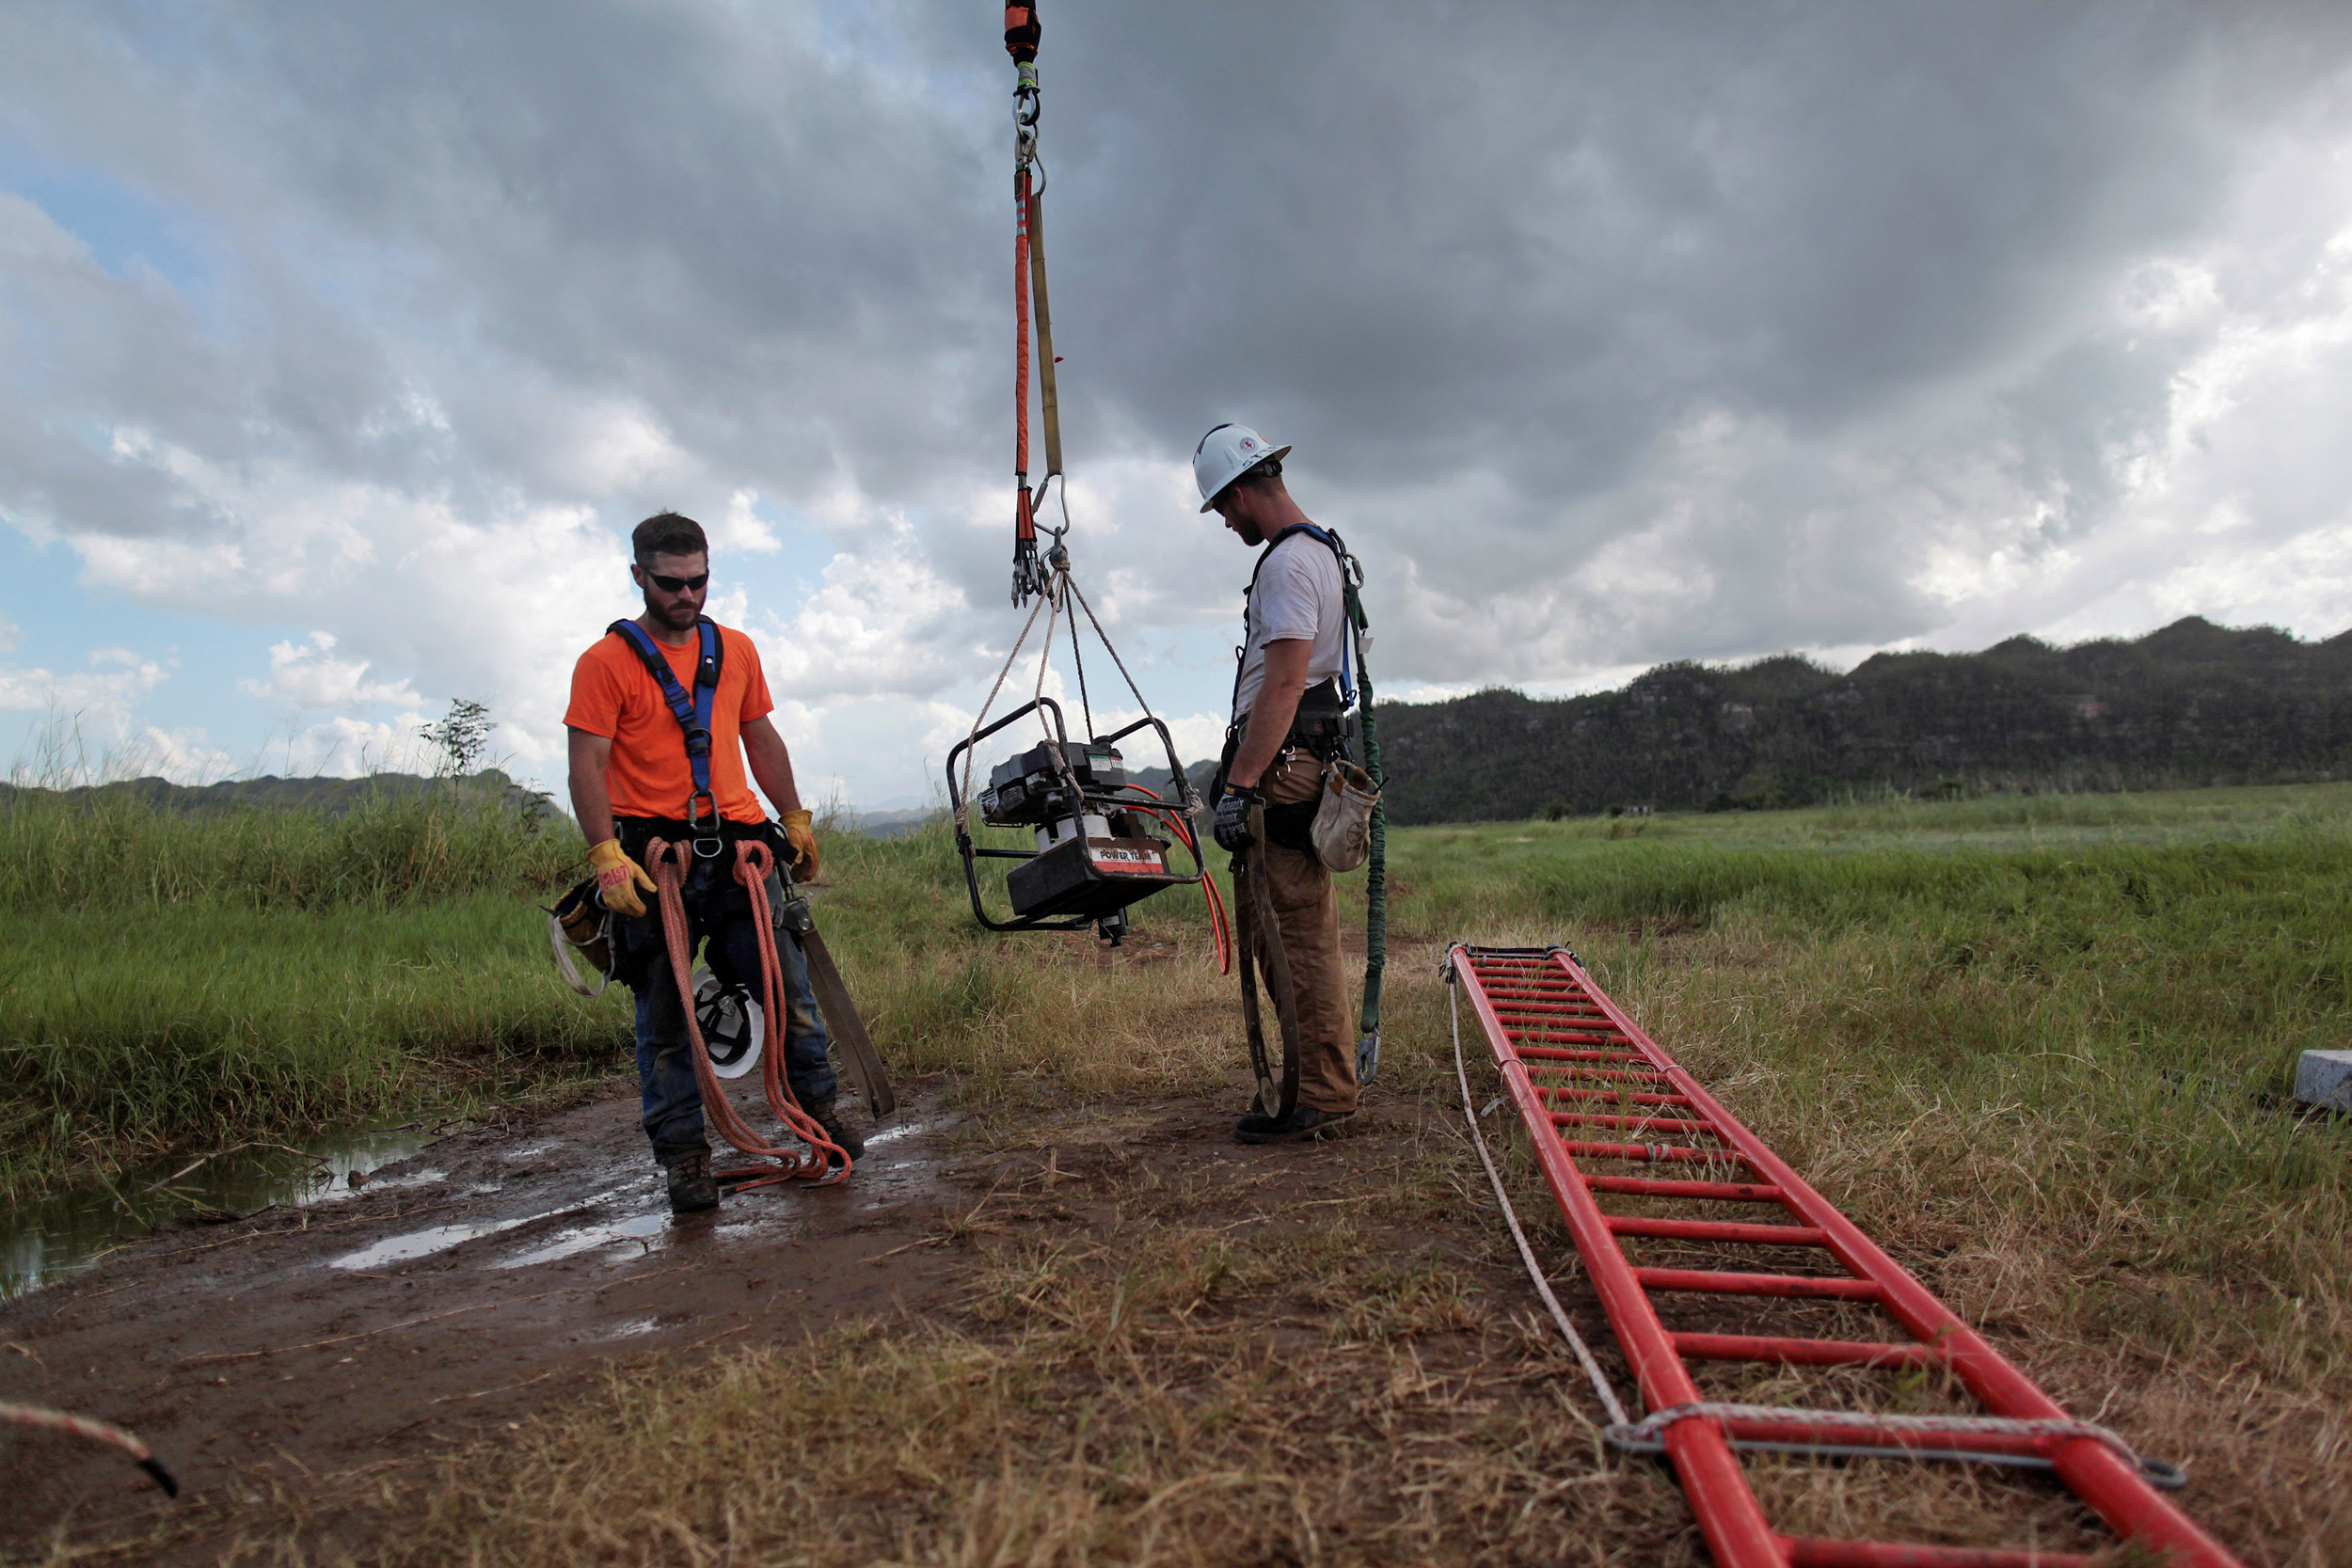 Image: Workers from Montana-based Whitefish Energy Holdings help fix the island's power grid, damaged during Hurricane Maria in September, in Manati